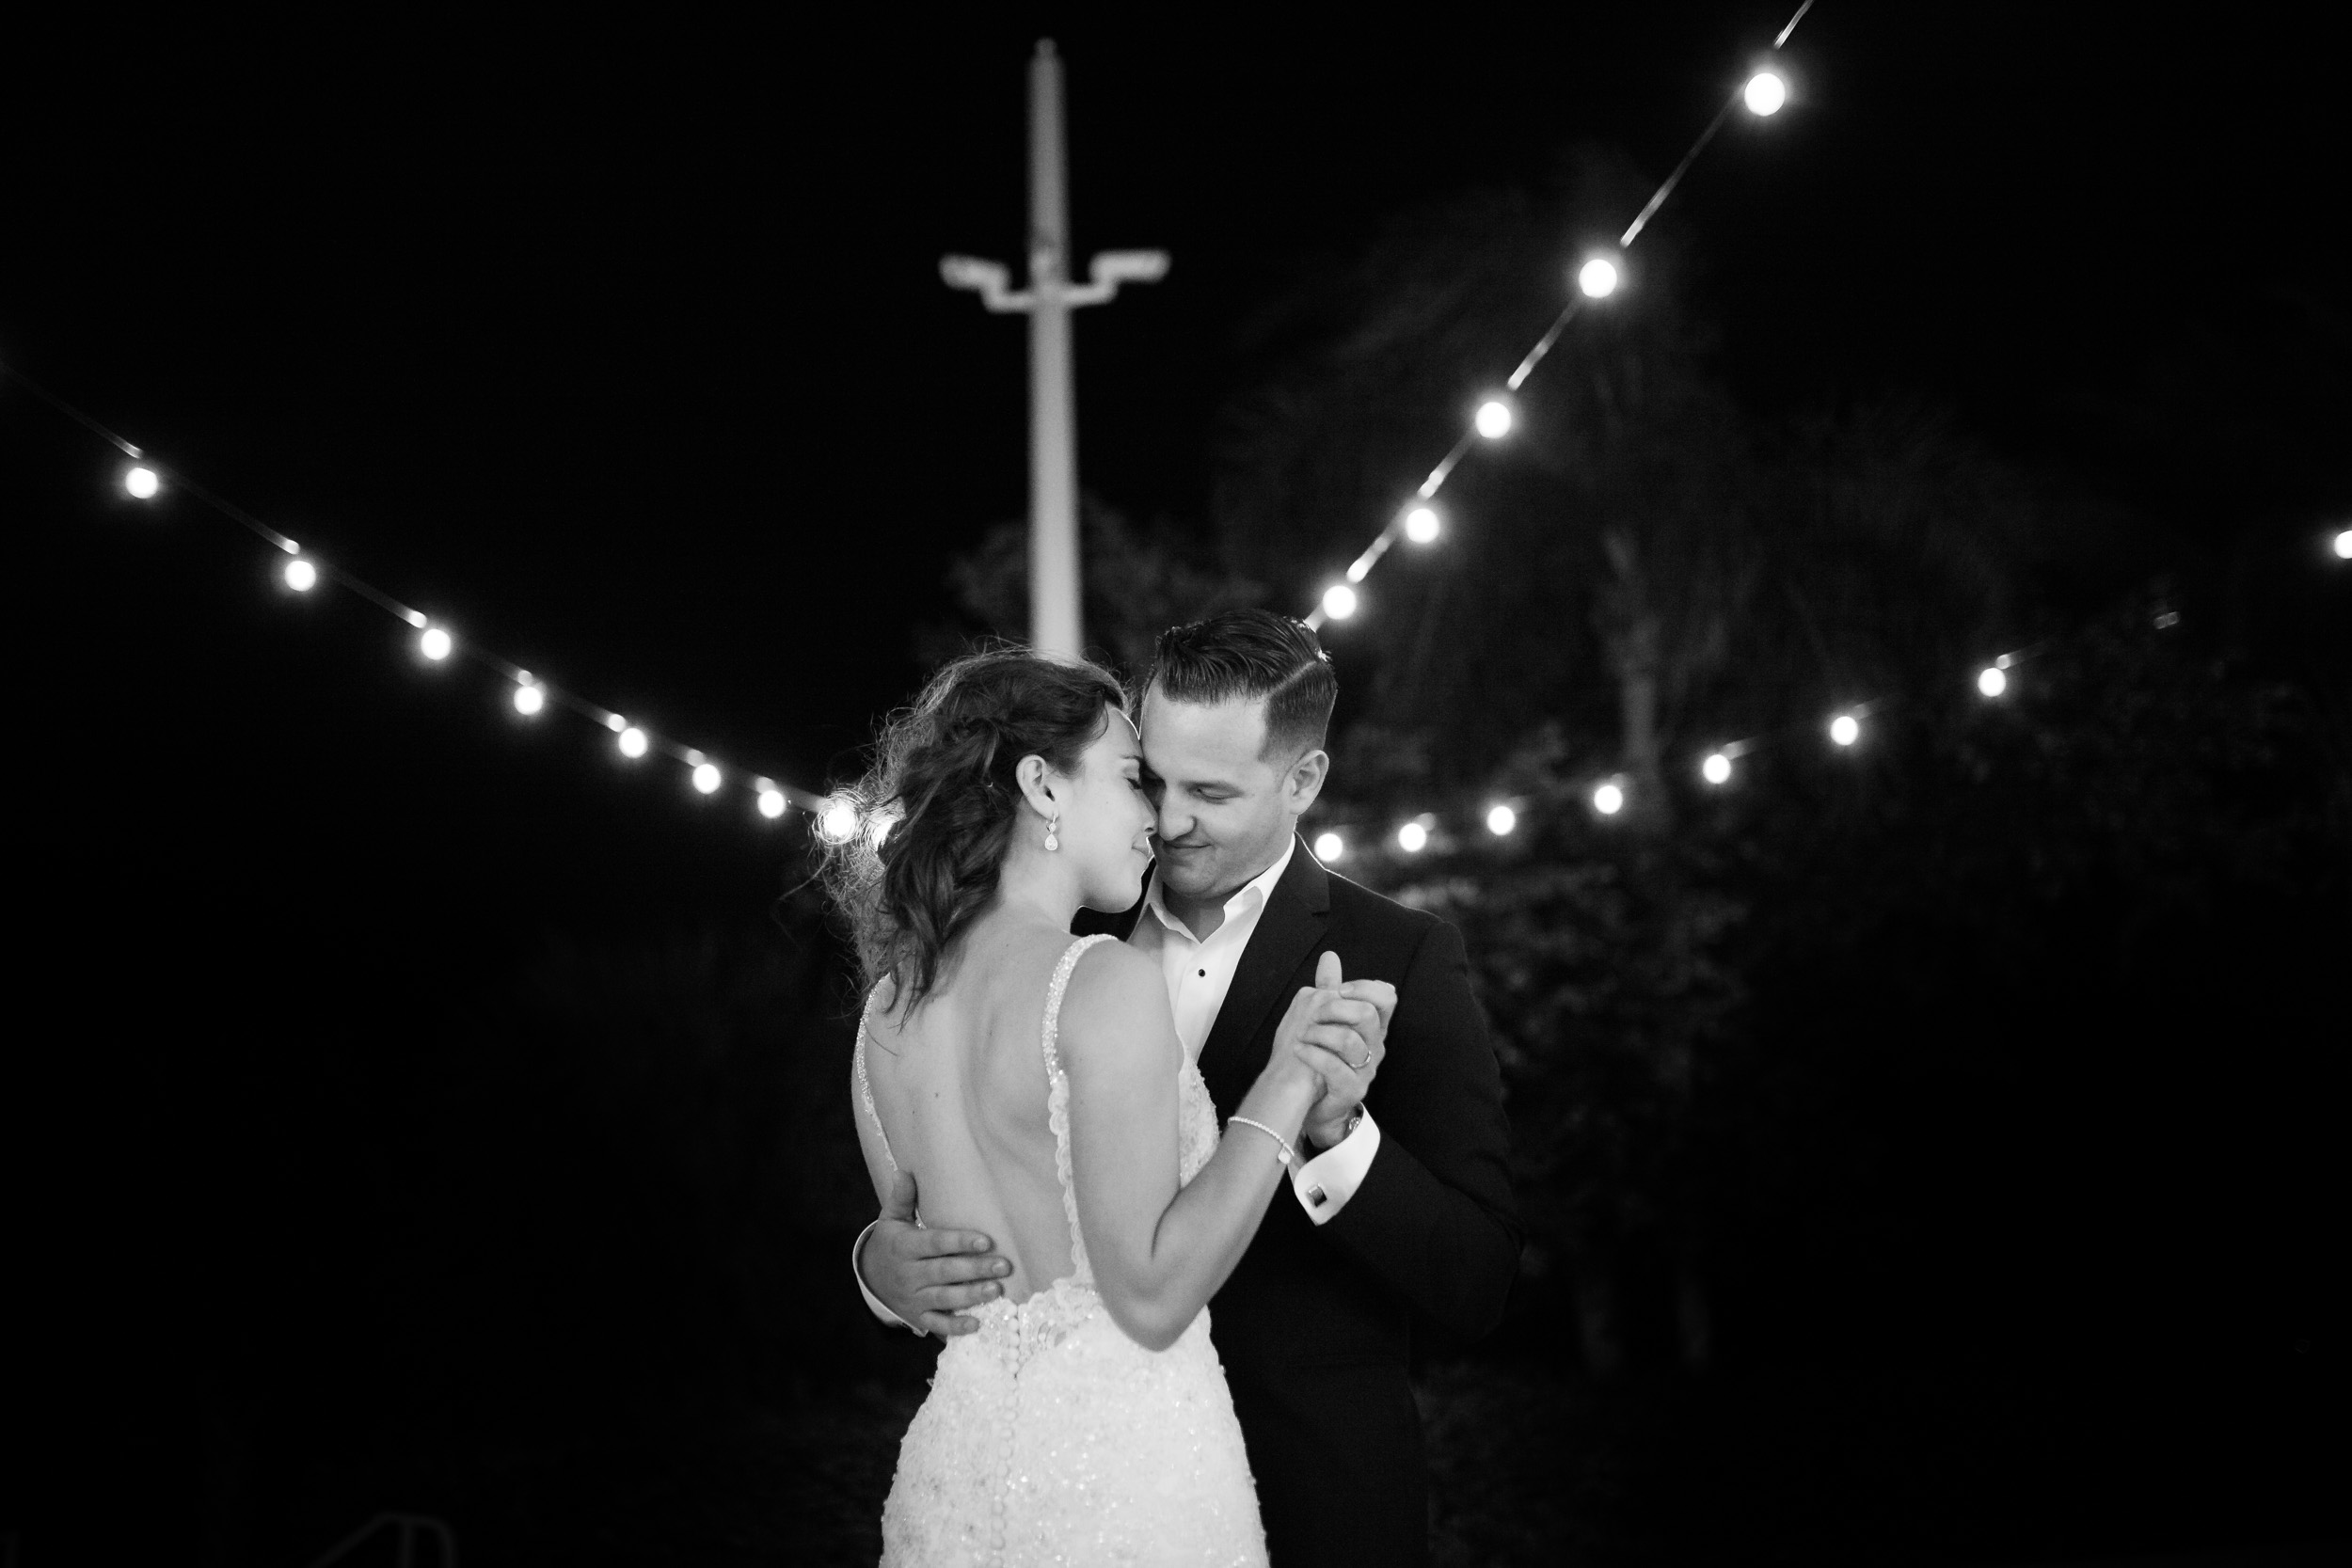 Flordia-Wedding-Photography-86.jpg